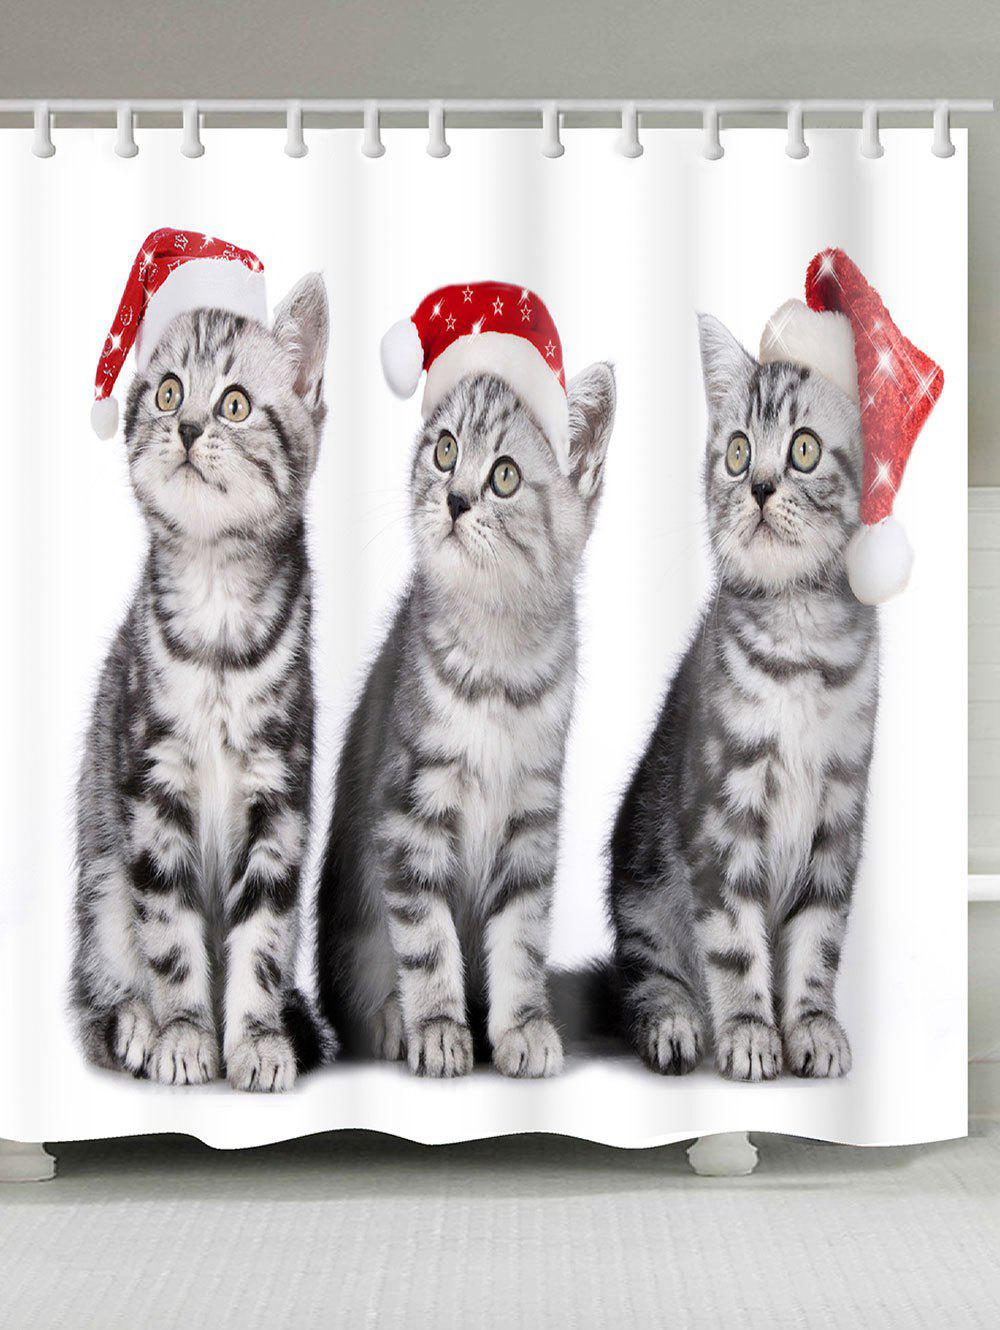 Three Christmas Cats Pattern Shower Bath CurtainHOME<br><br>Size: W71 INCH * L79 INCH; Color: RED + WHITE + GRAY; Products Type: Shower Curtains; Materials: Polyester; Pattern: Animal; Style: Festival; Number of Hook Holes: W59 inch * L71 inch:10, W71 inch * L71 inch:12, W71 inch * L79 inch:12; Package Contents: 1 x Shower Curtain 1 x Hooks (Set);